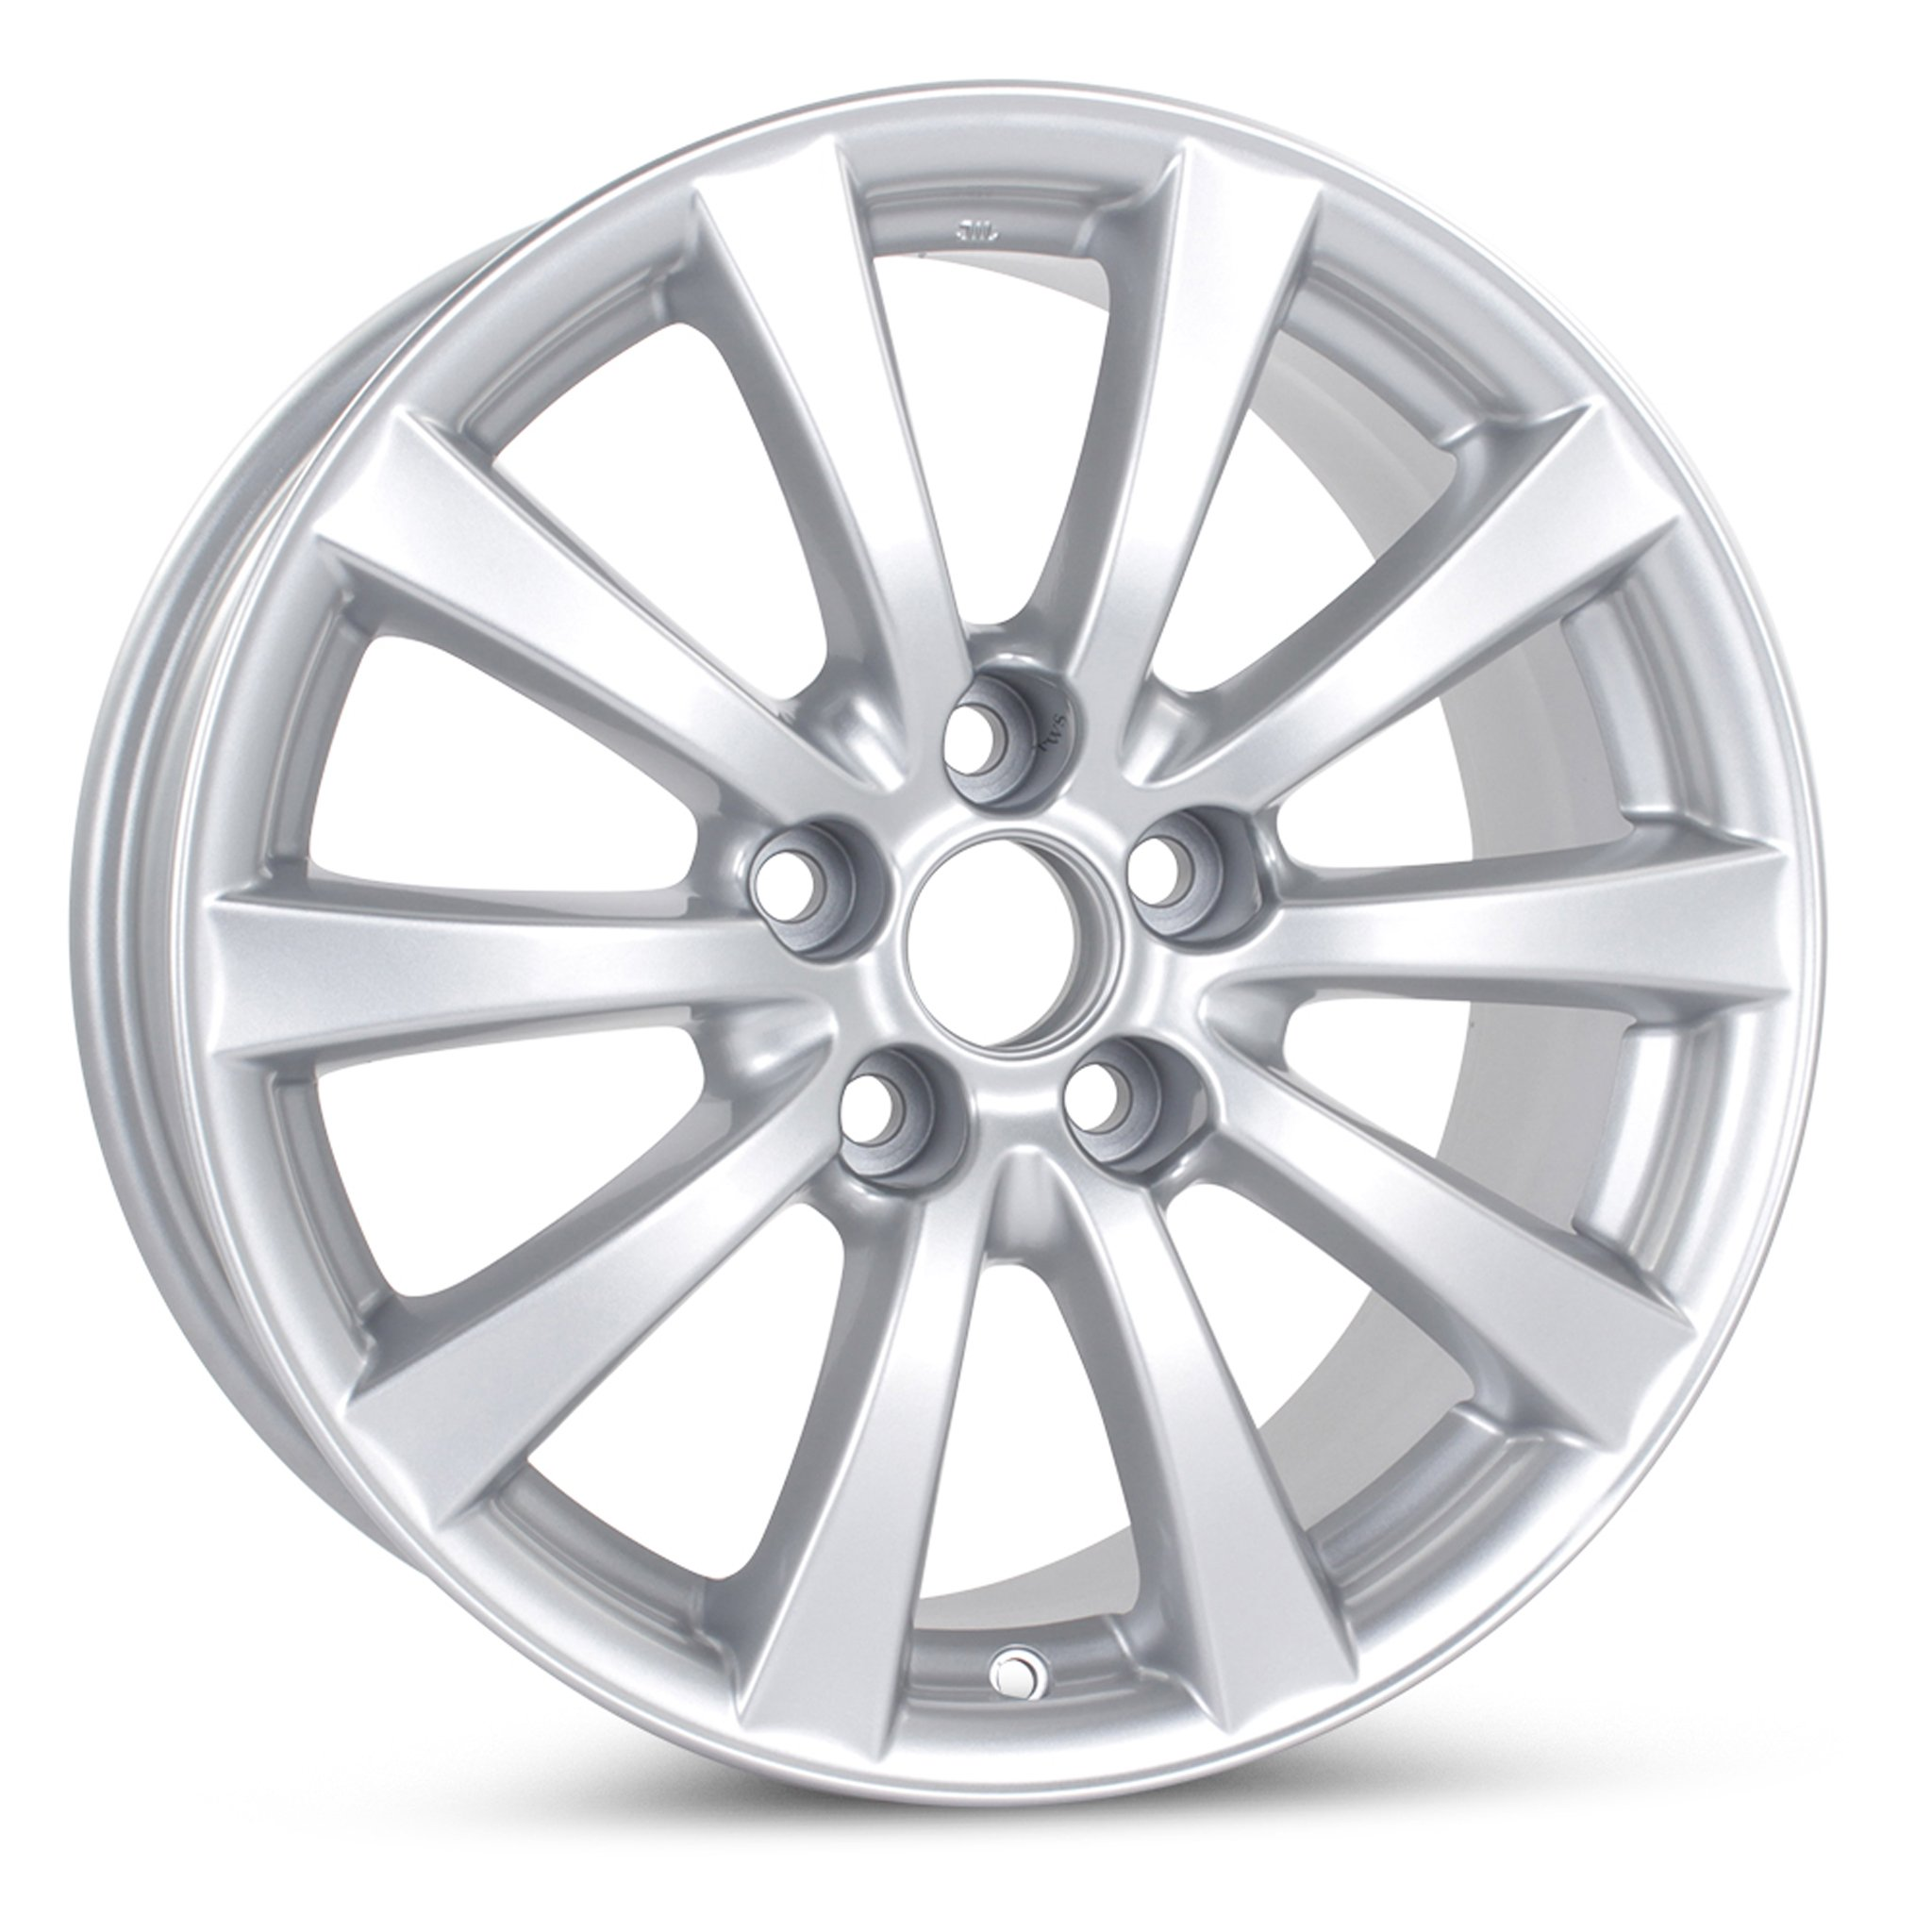 Brand New 17'' x 8'' Replacement Wheel for Lexus IS250 IS350 2006-2008 Rim 74188